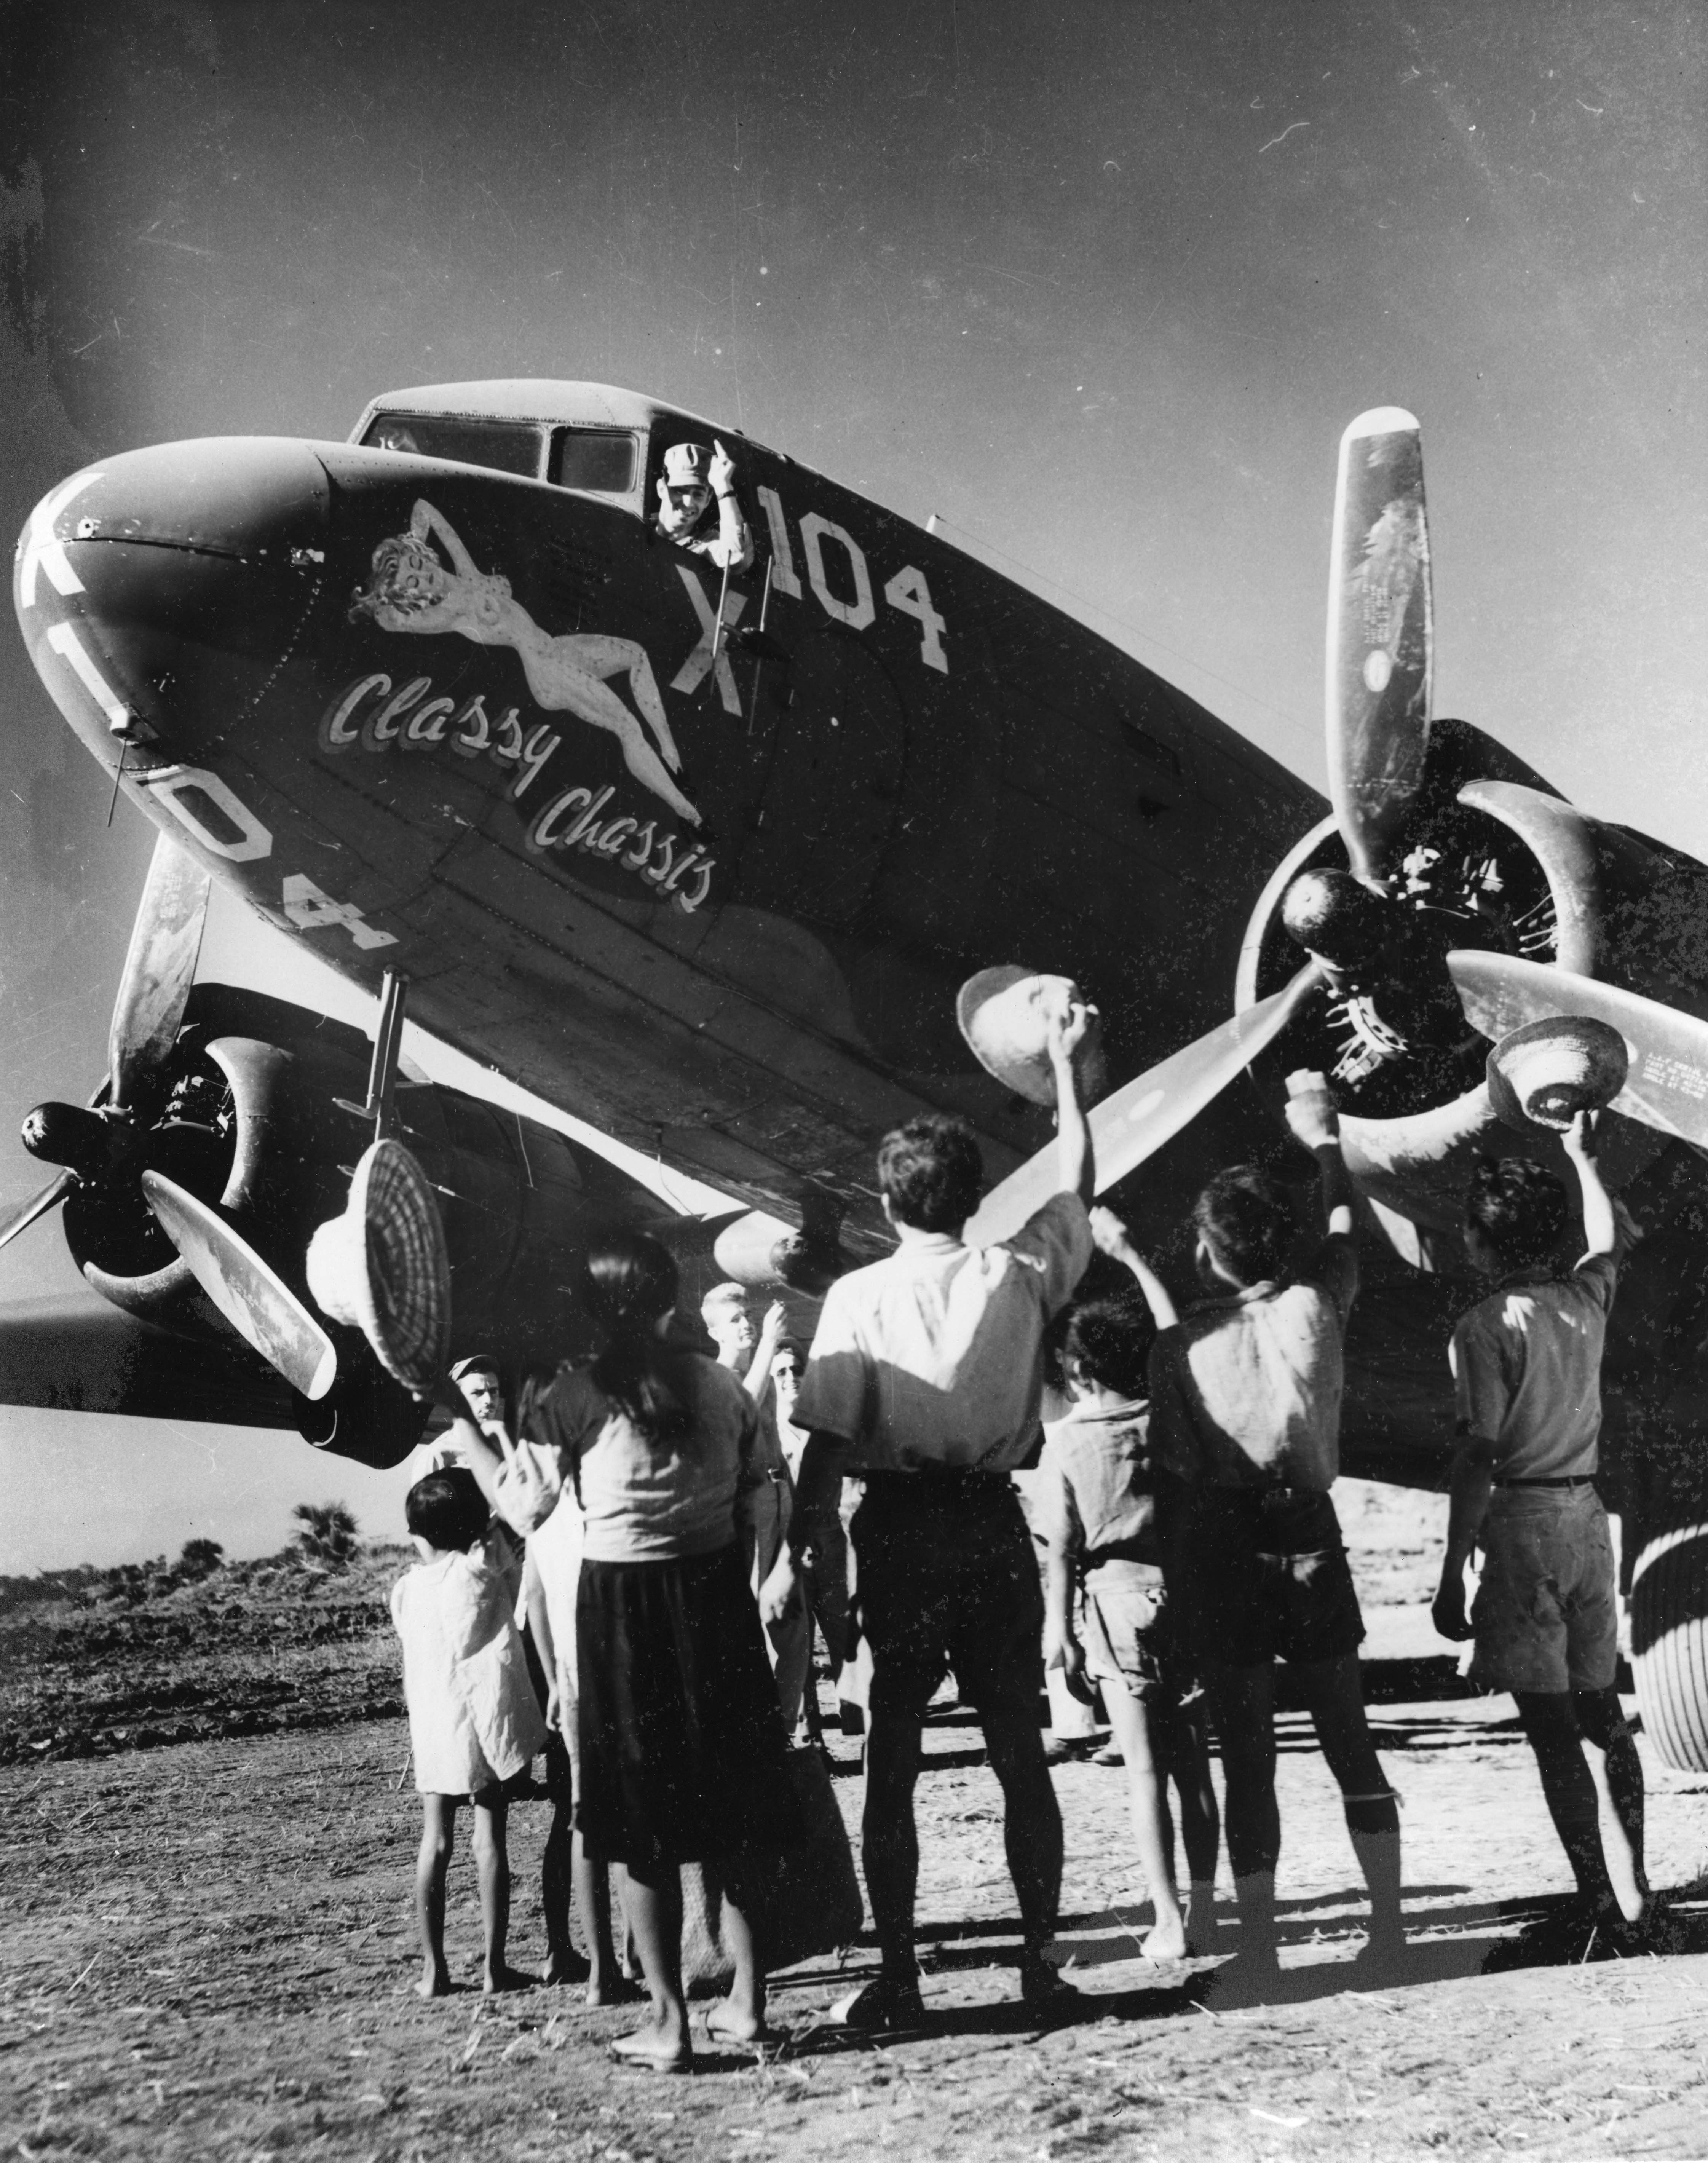 Classy Chassis : C-47 : 375th Troop Carrier Group : 55th Troop Carrier Squadron : PH00031315 (Frederick German Collection)